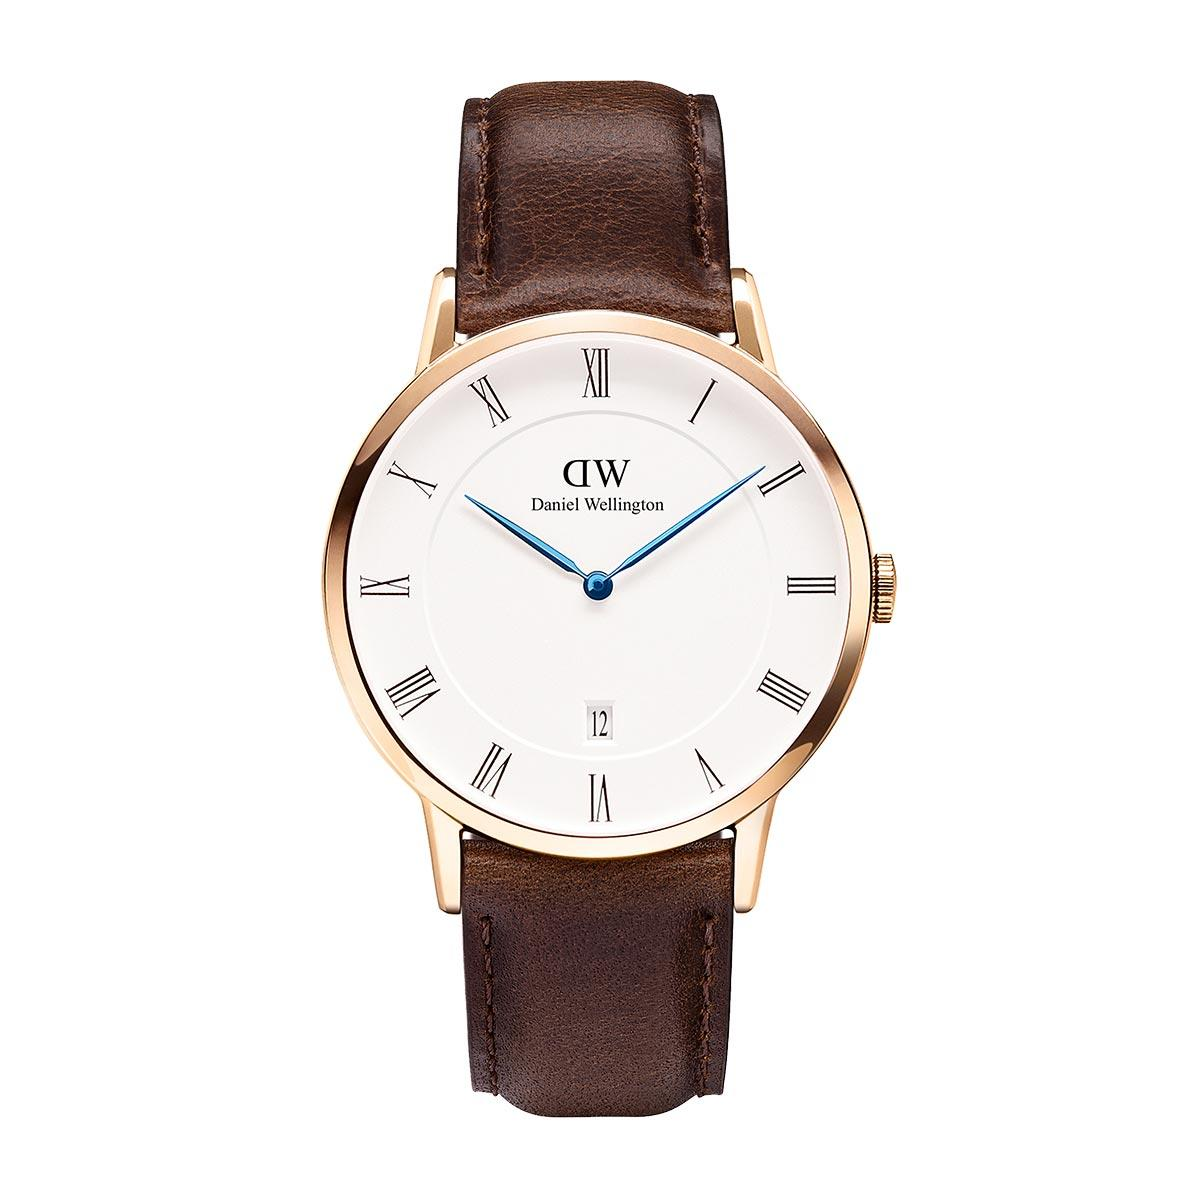 daniel wellington watch front side